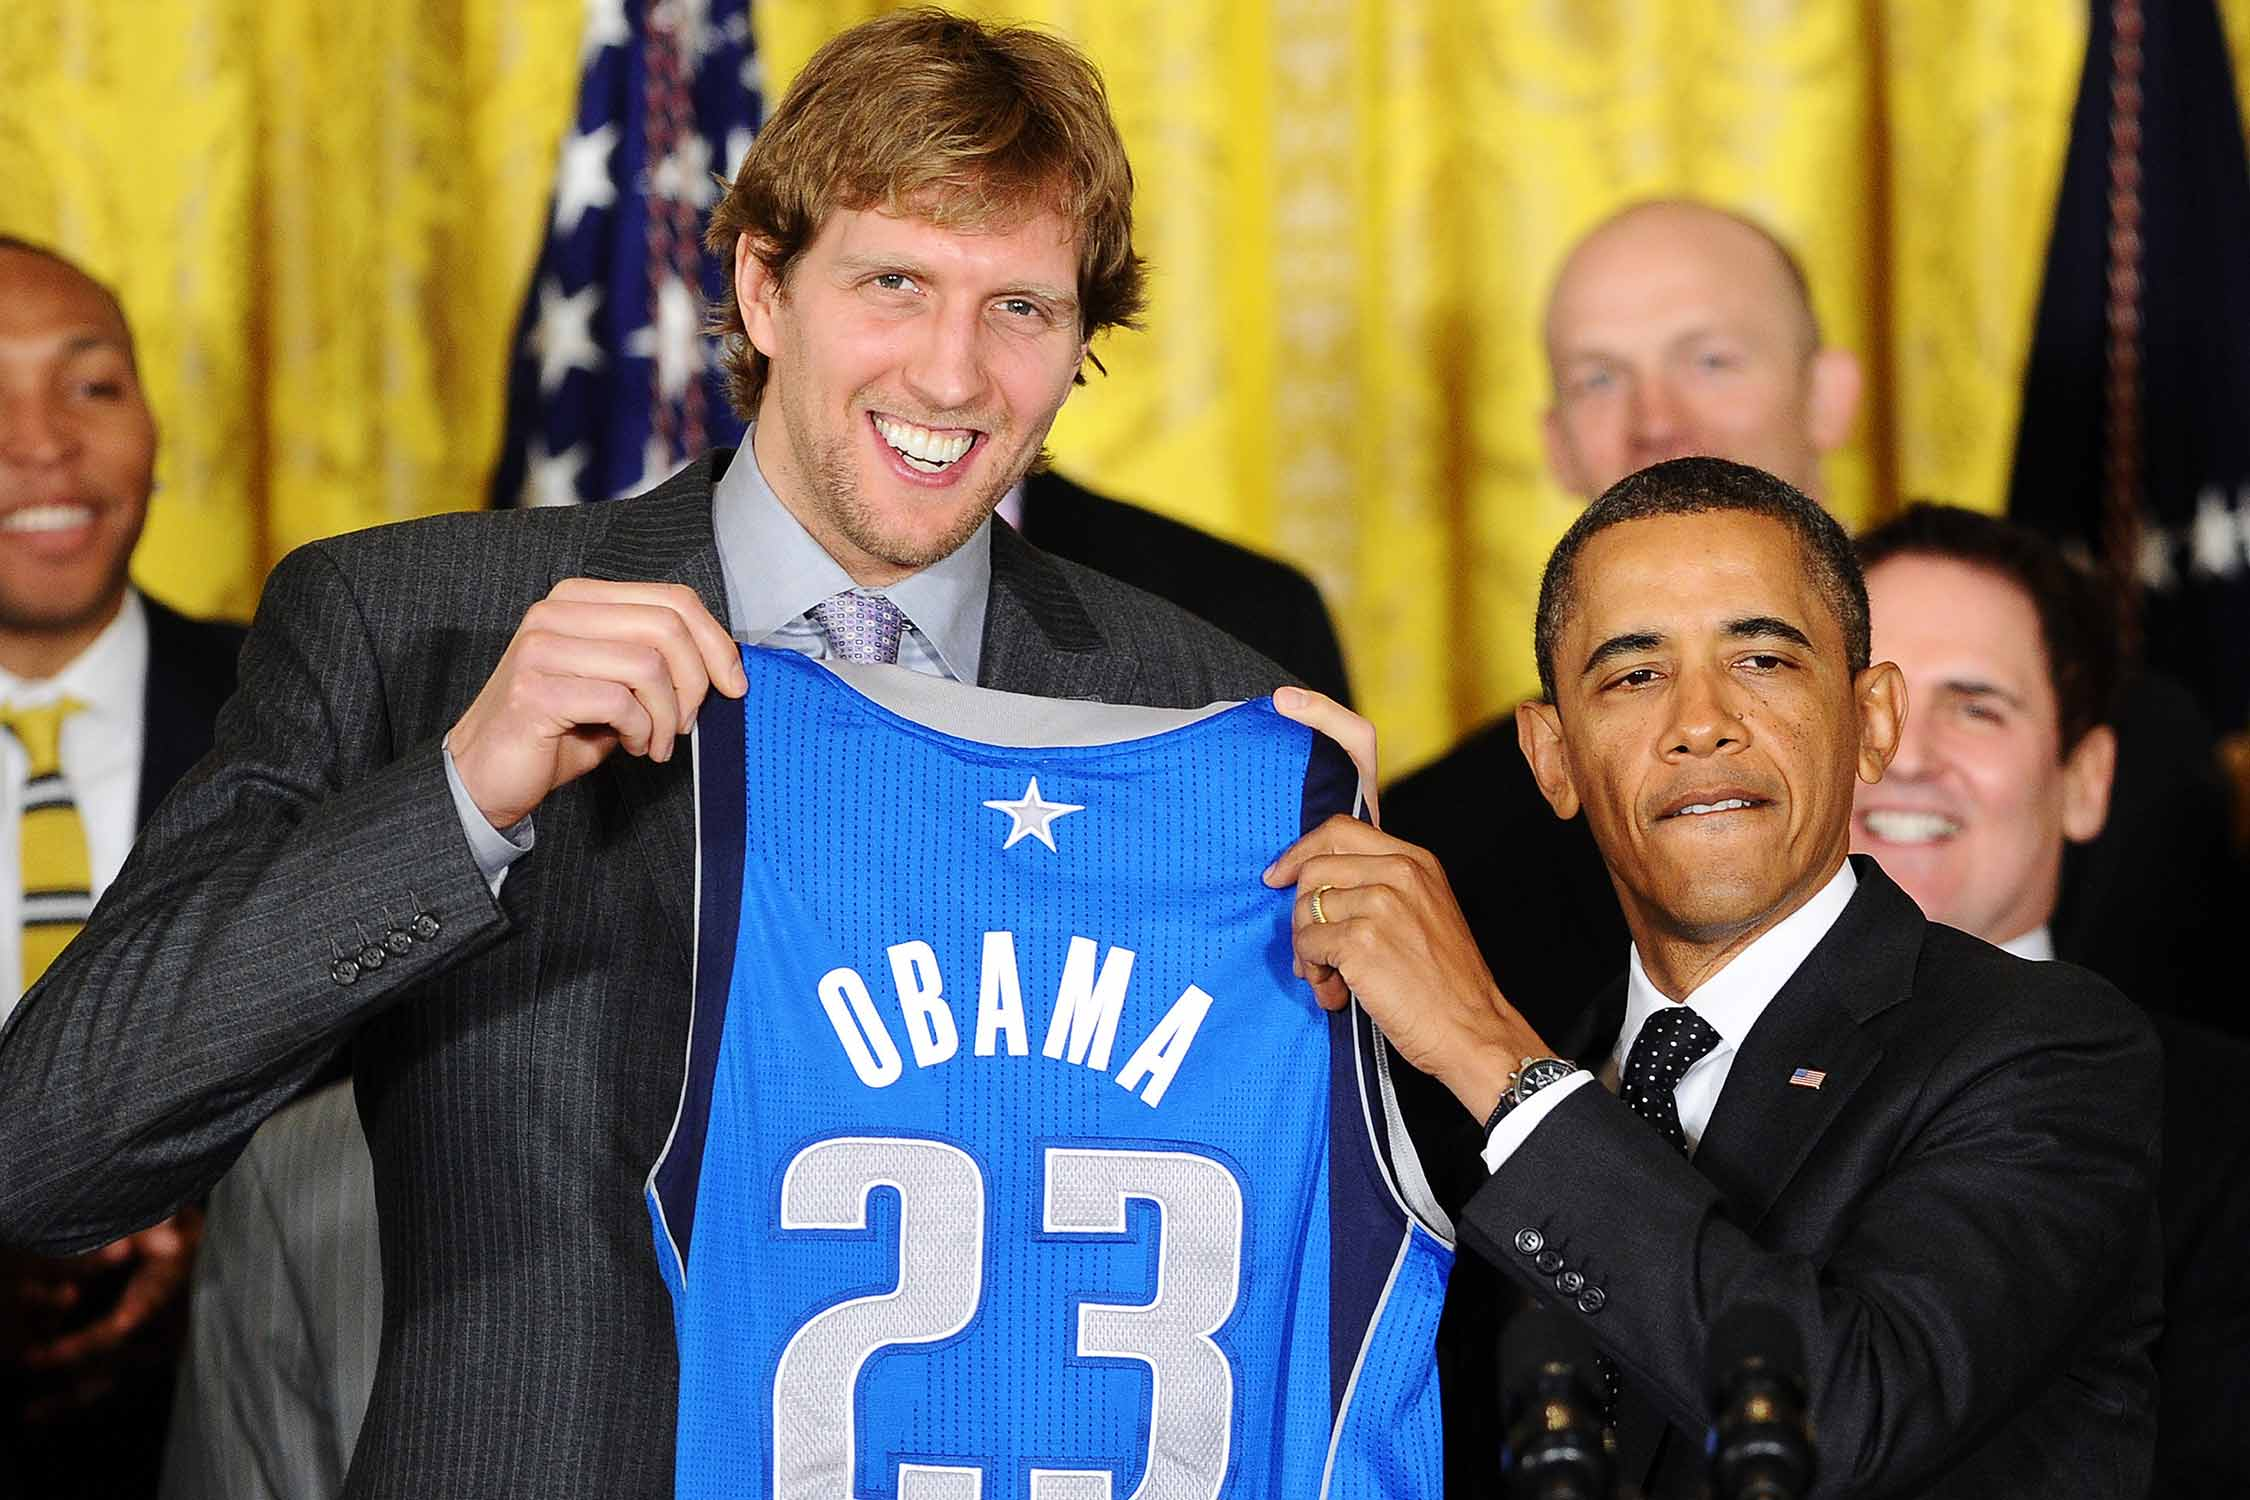 Dirk Nowitzki and Barack Obama